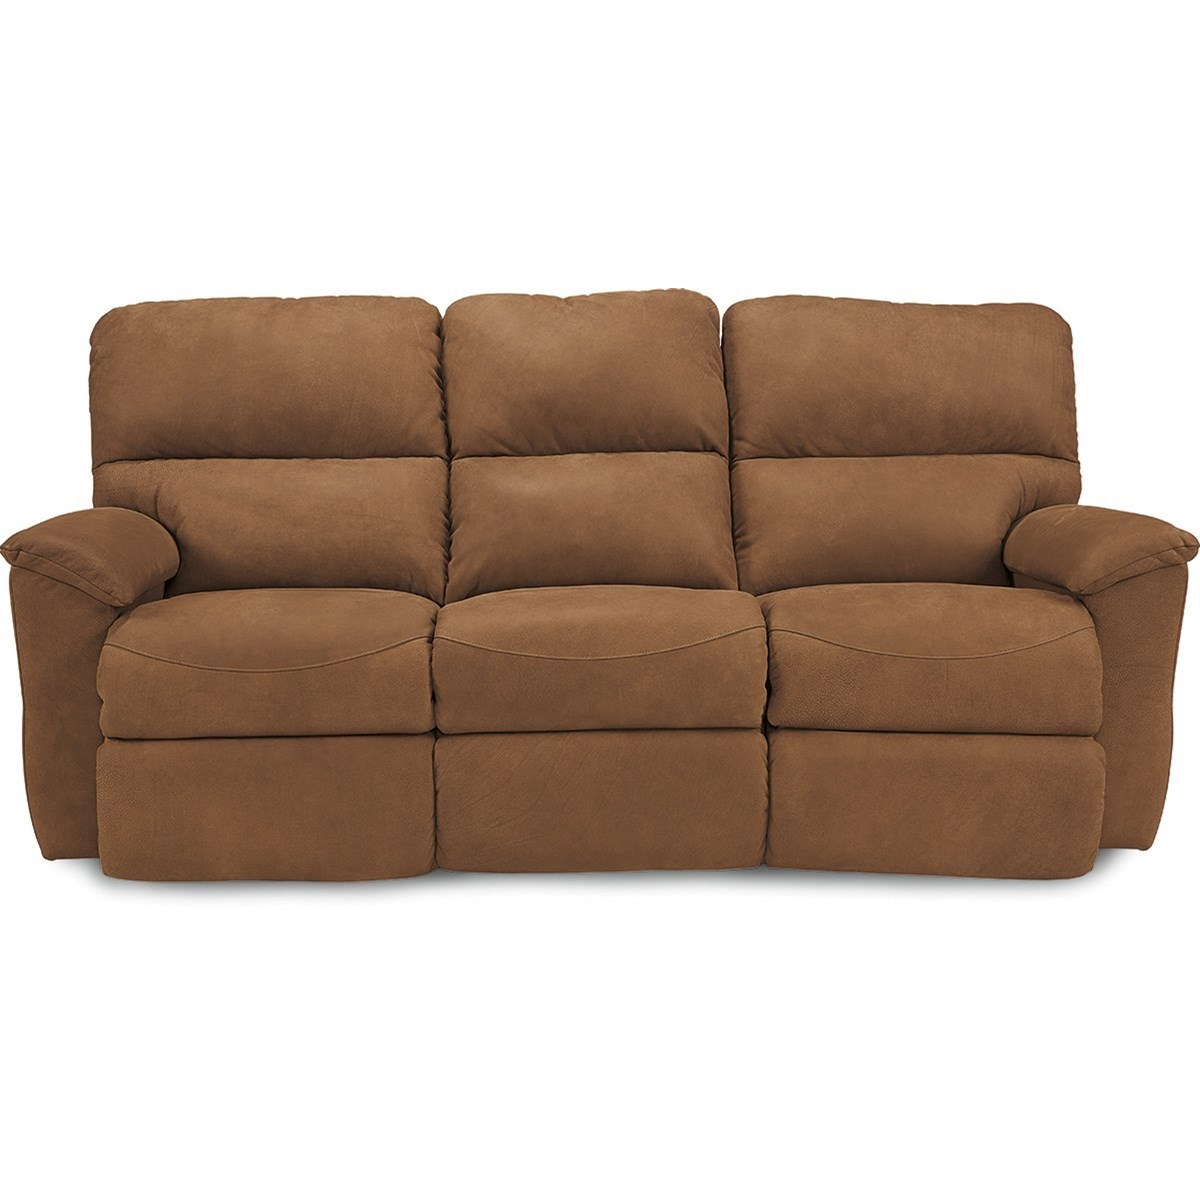 Full Reclining Sofa